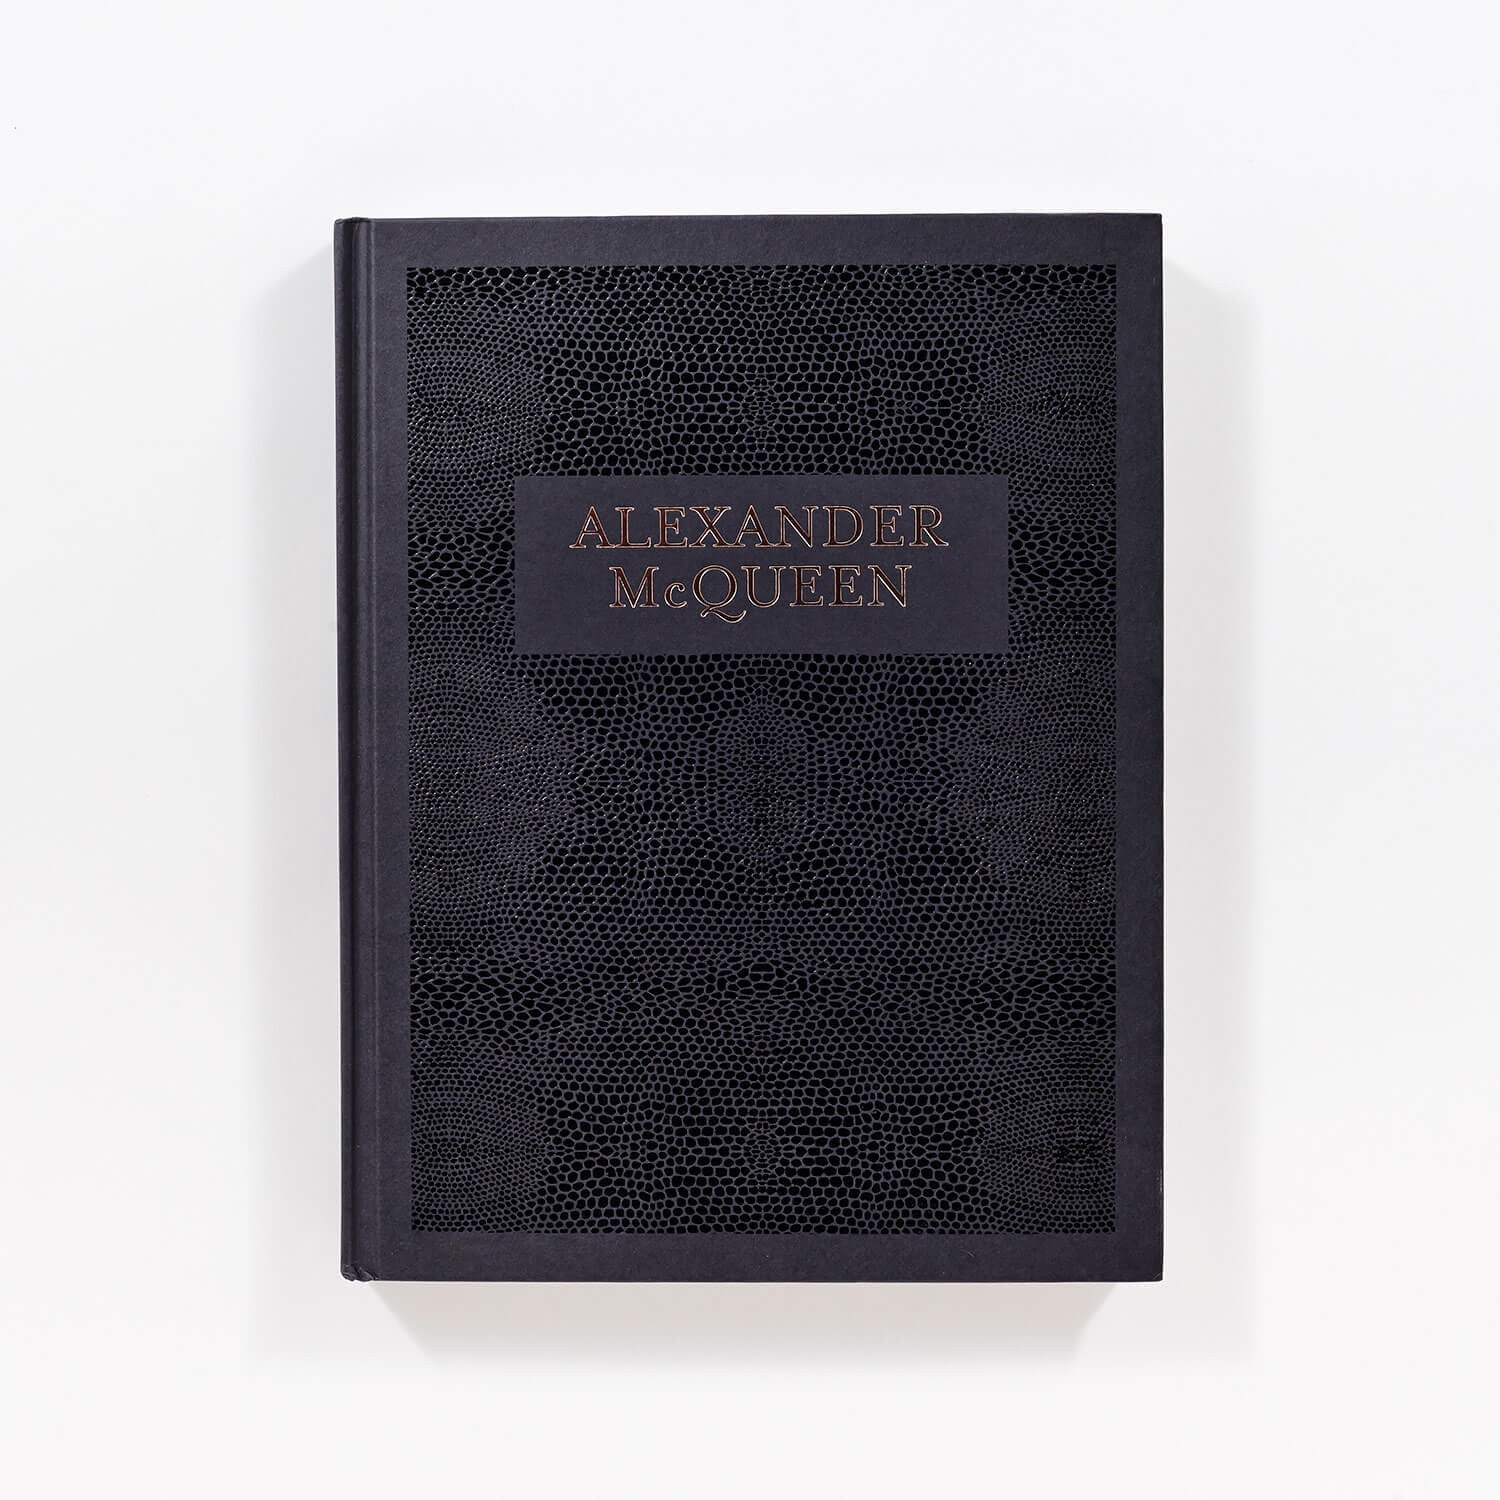 Alexander McQueen Coffee Table Book– Dormify